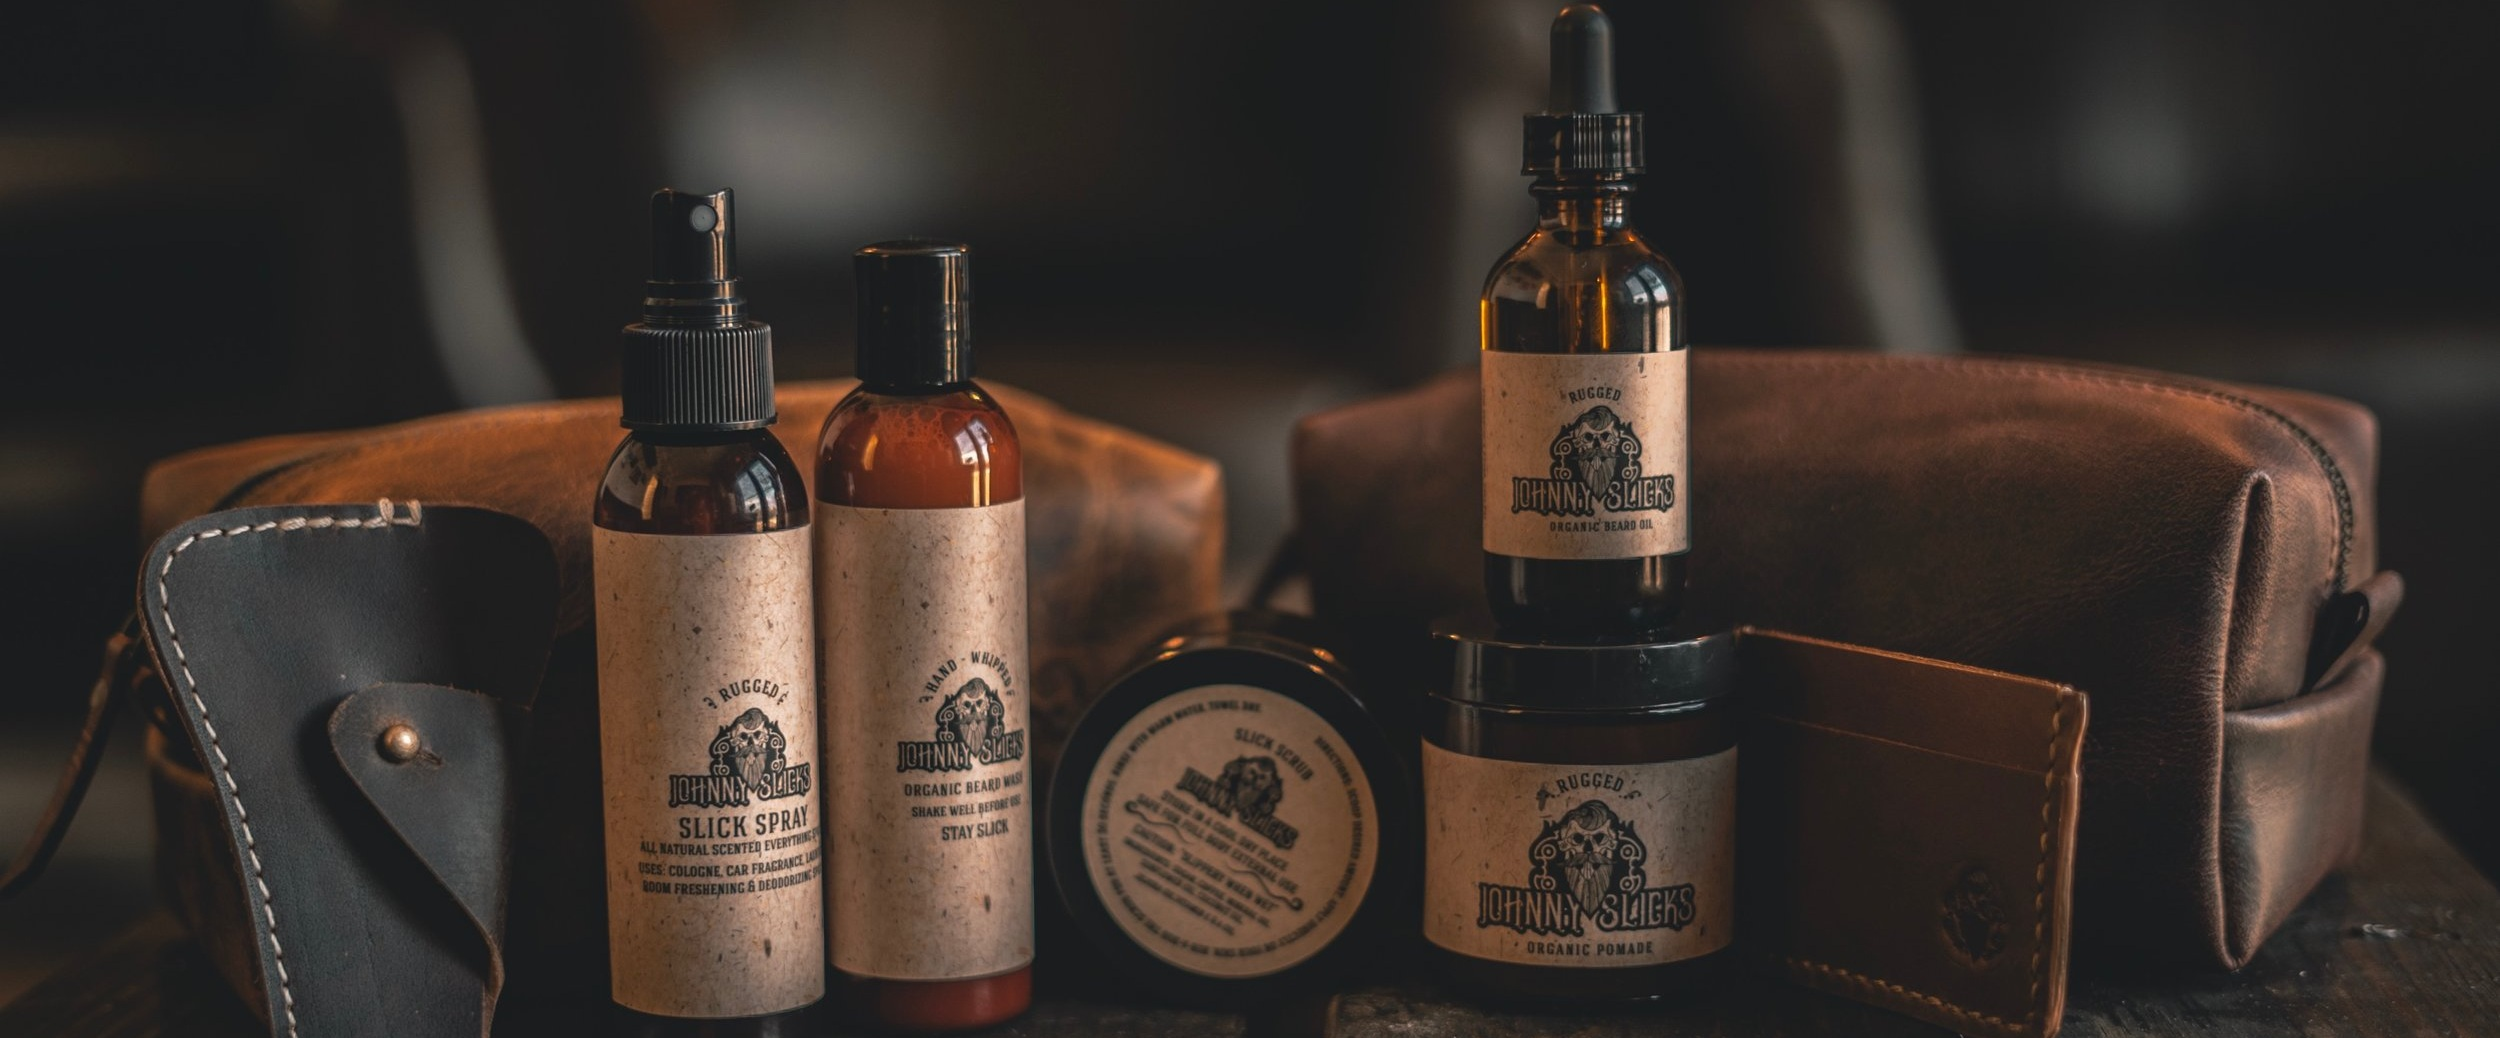 Johnny Slicks - Hand Made Organic Grooming Products